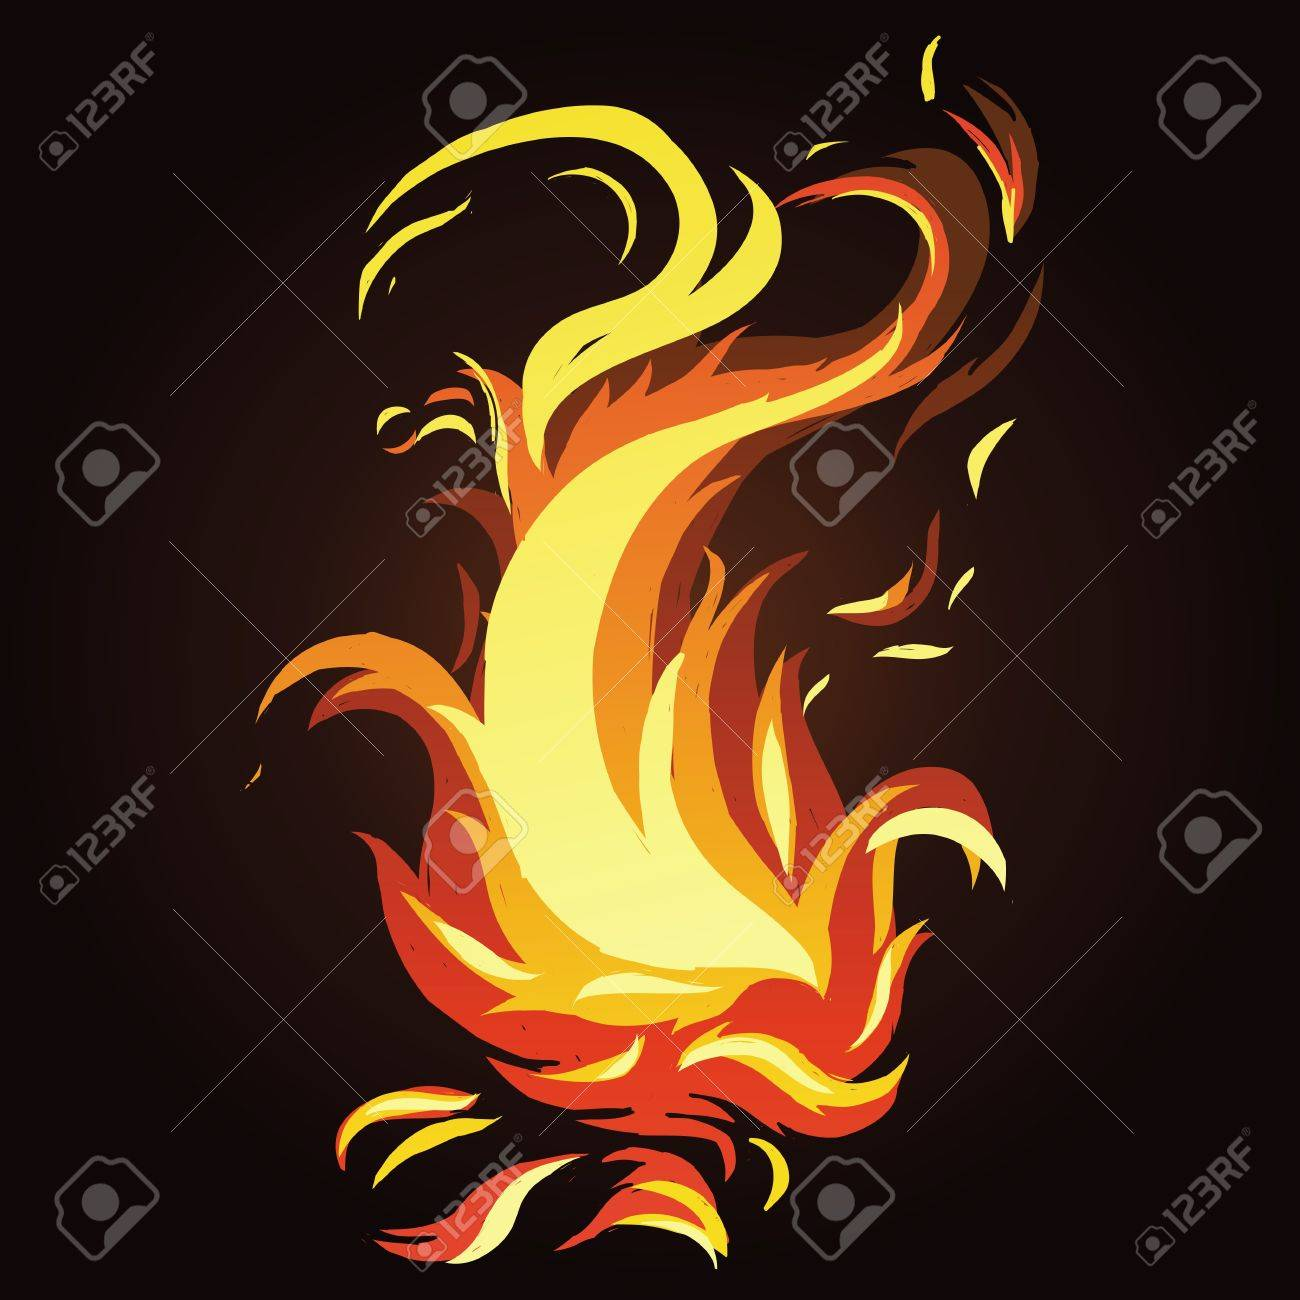 Vector abstract fire - bright icon on dark background Stock Vector - 19255085